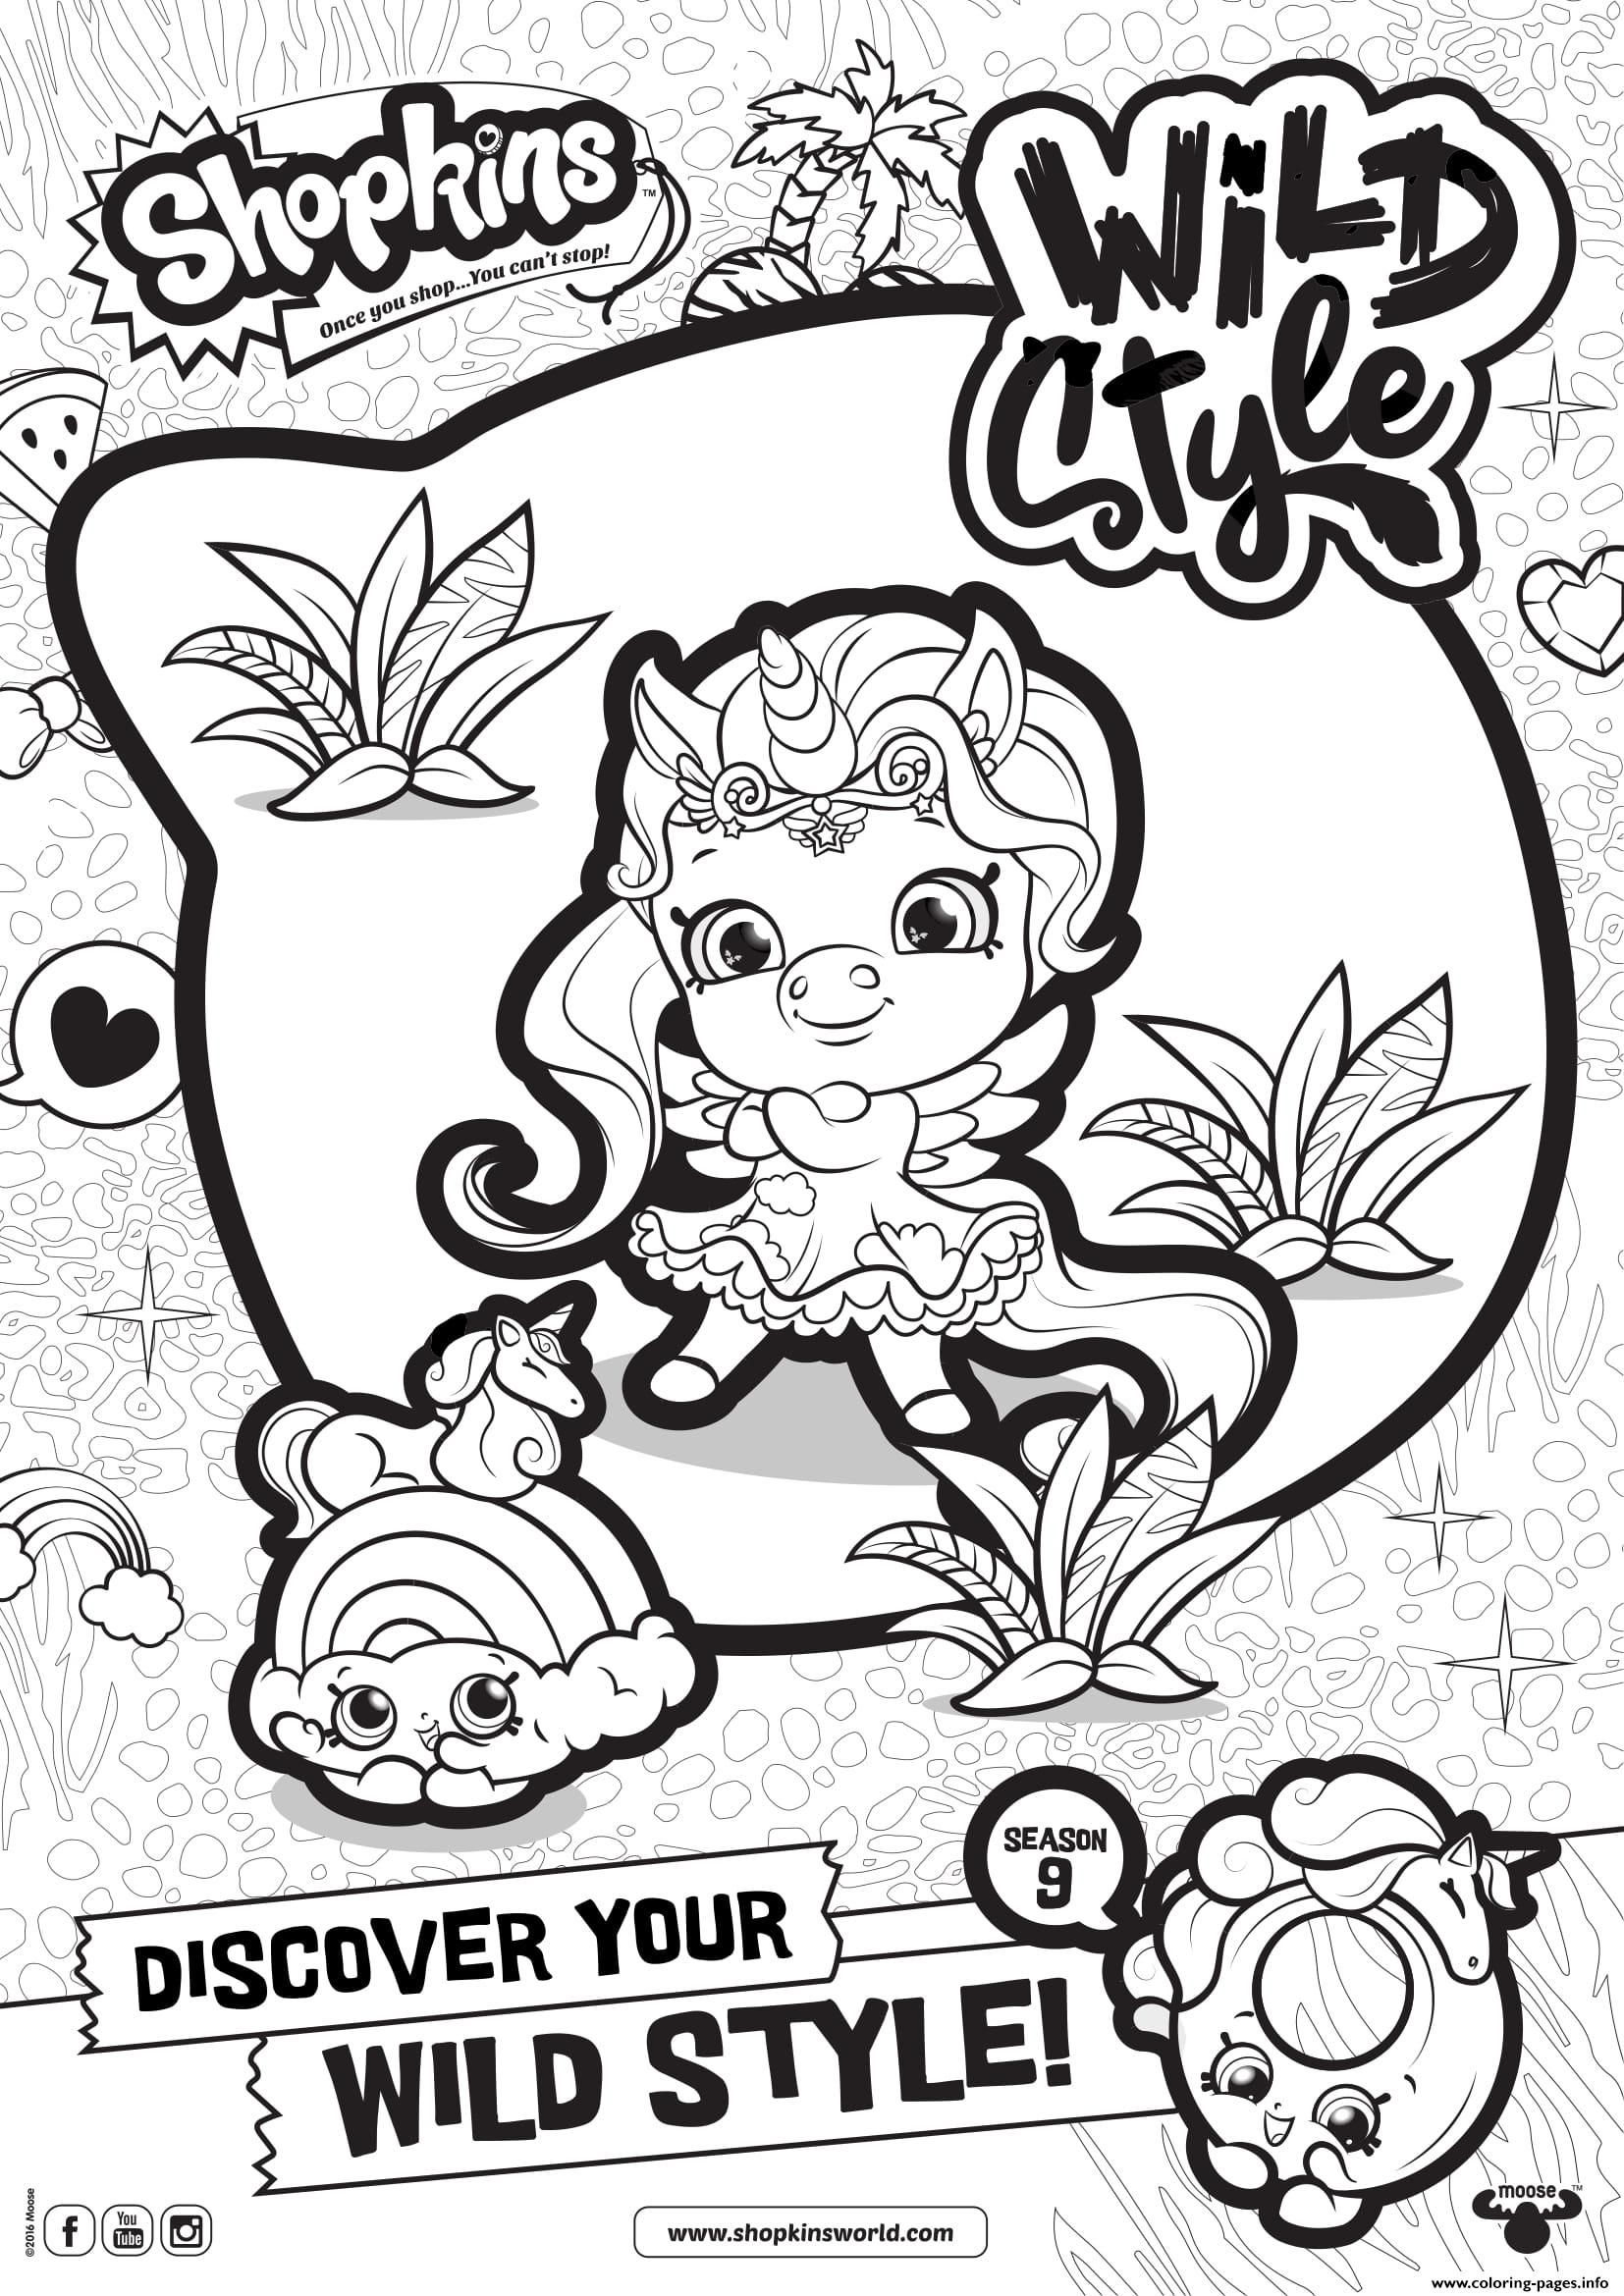 Print Shopkins Season 9 Wild Style 1 Coloring Pages Shopkins